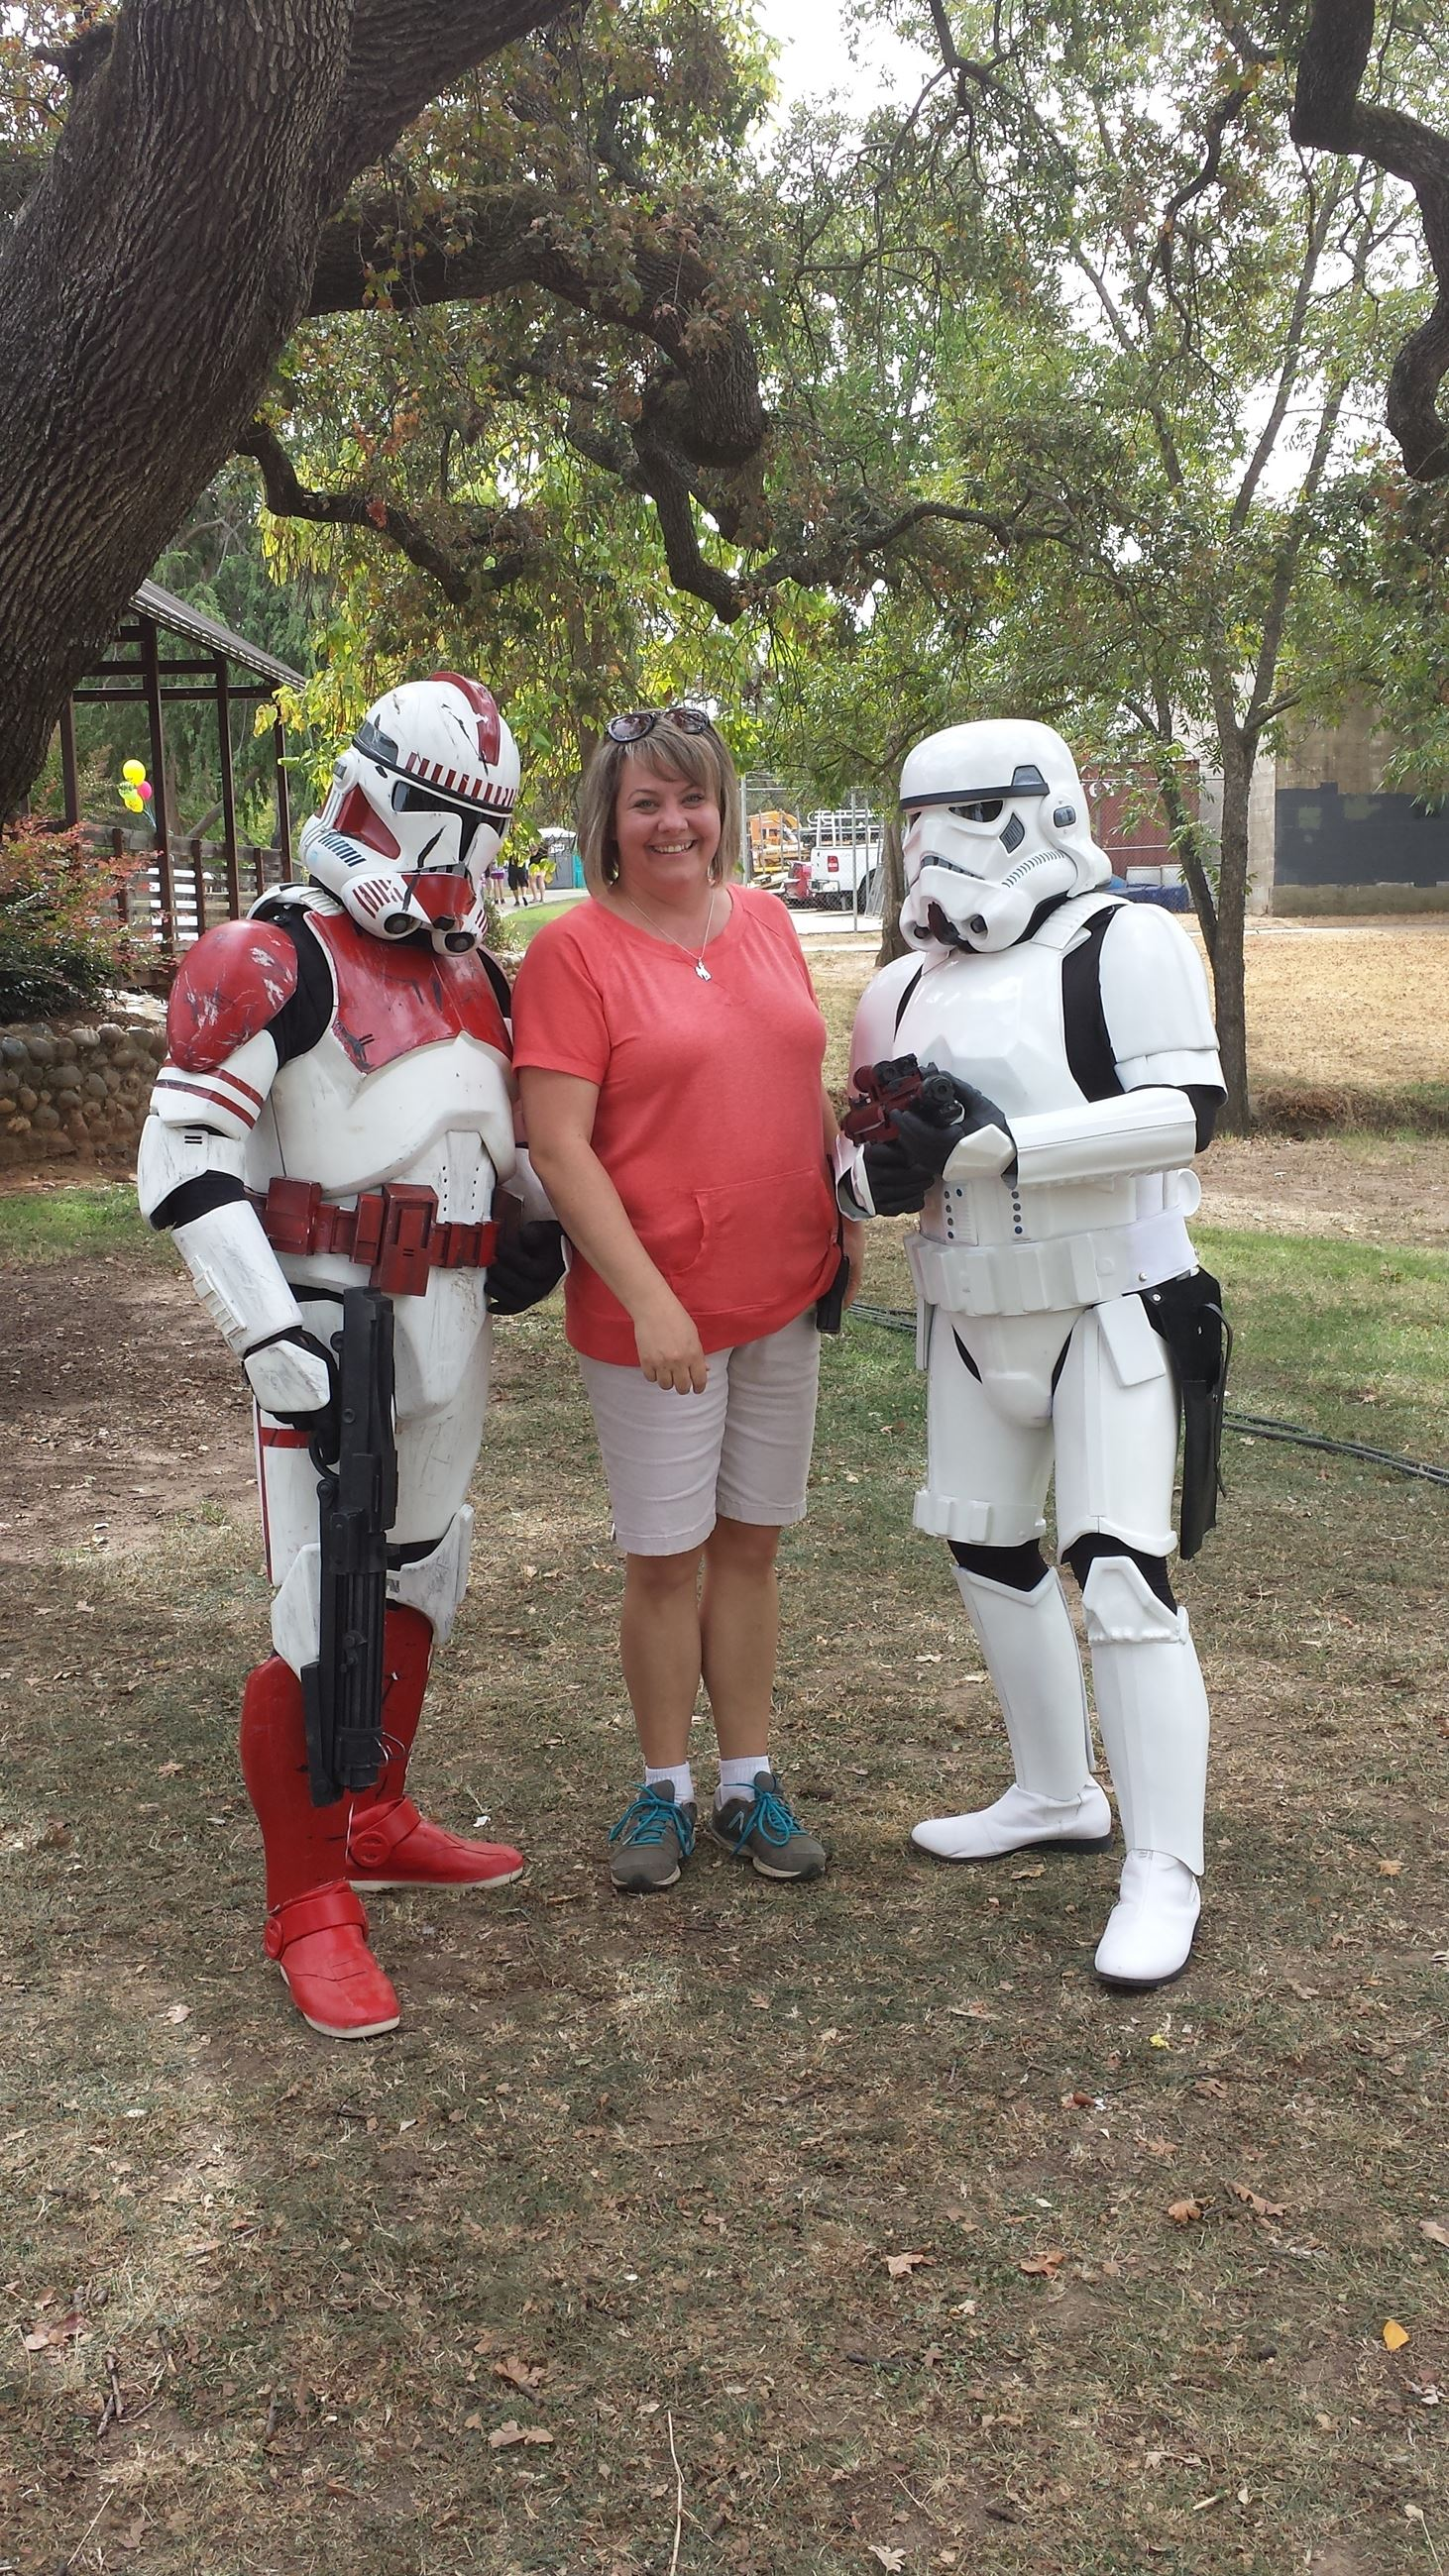 Posing with Stormtroopers